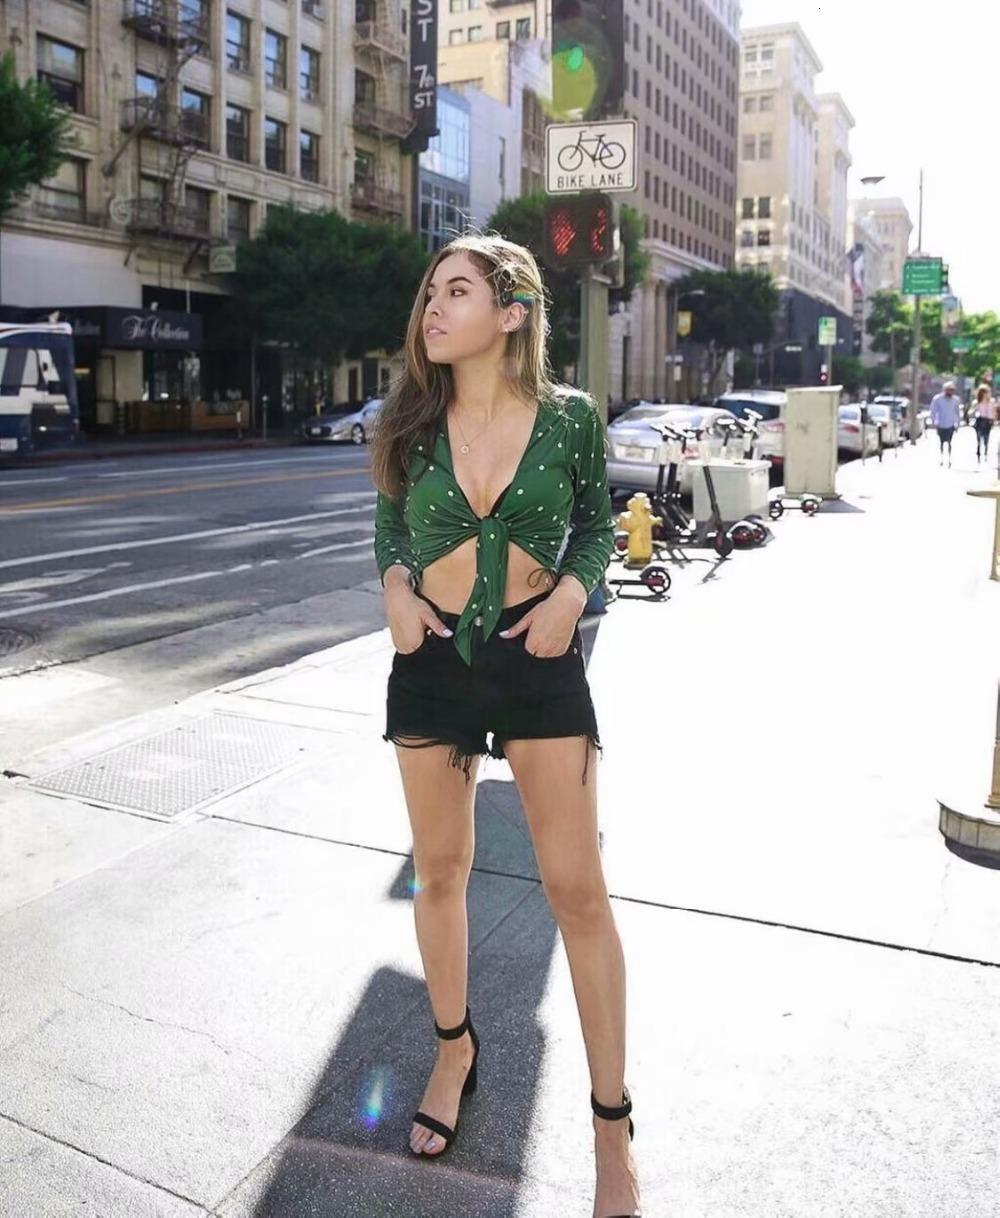 V Neck Long Sleeve Fashion new arrivals For Love Tie Front Top with Green Center Front Tie Side Seam Women blouses Shirts Sexy Crop Top